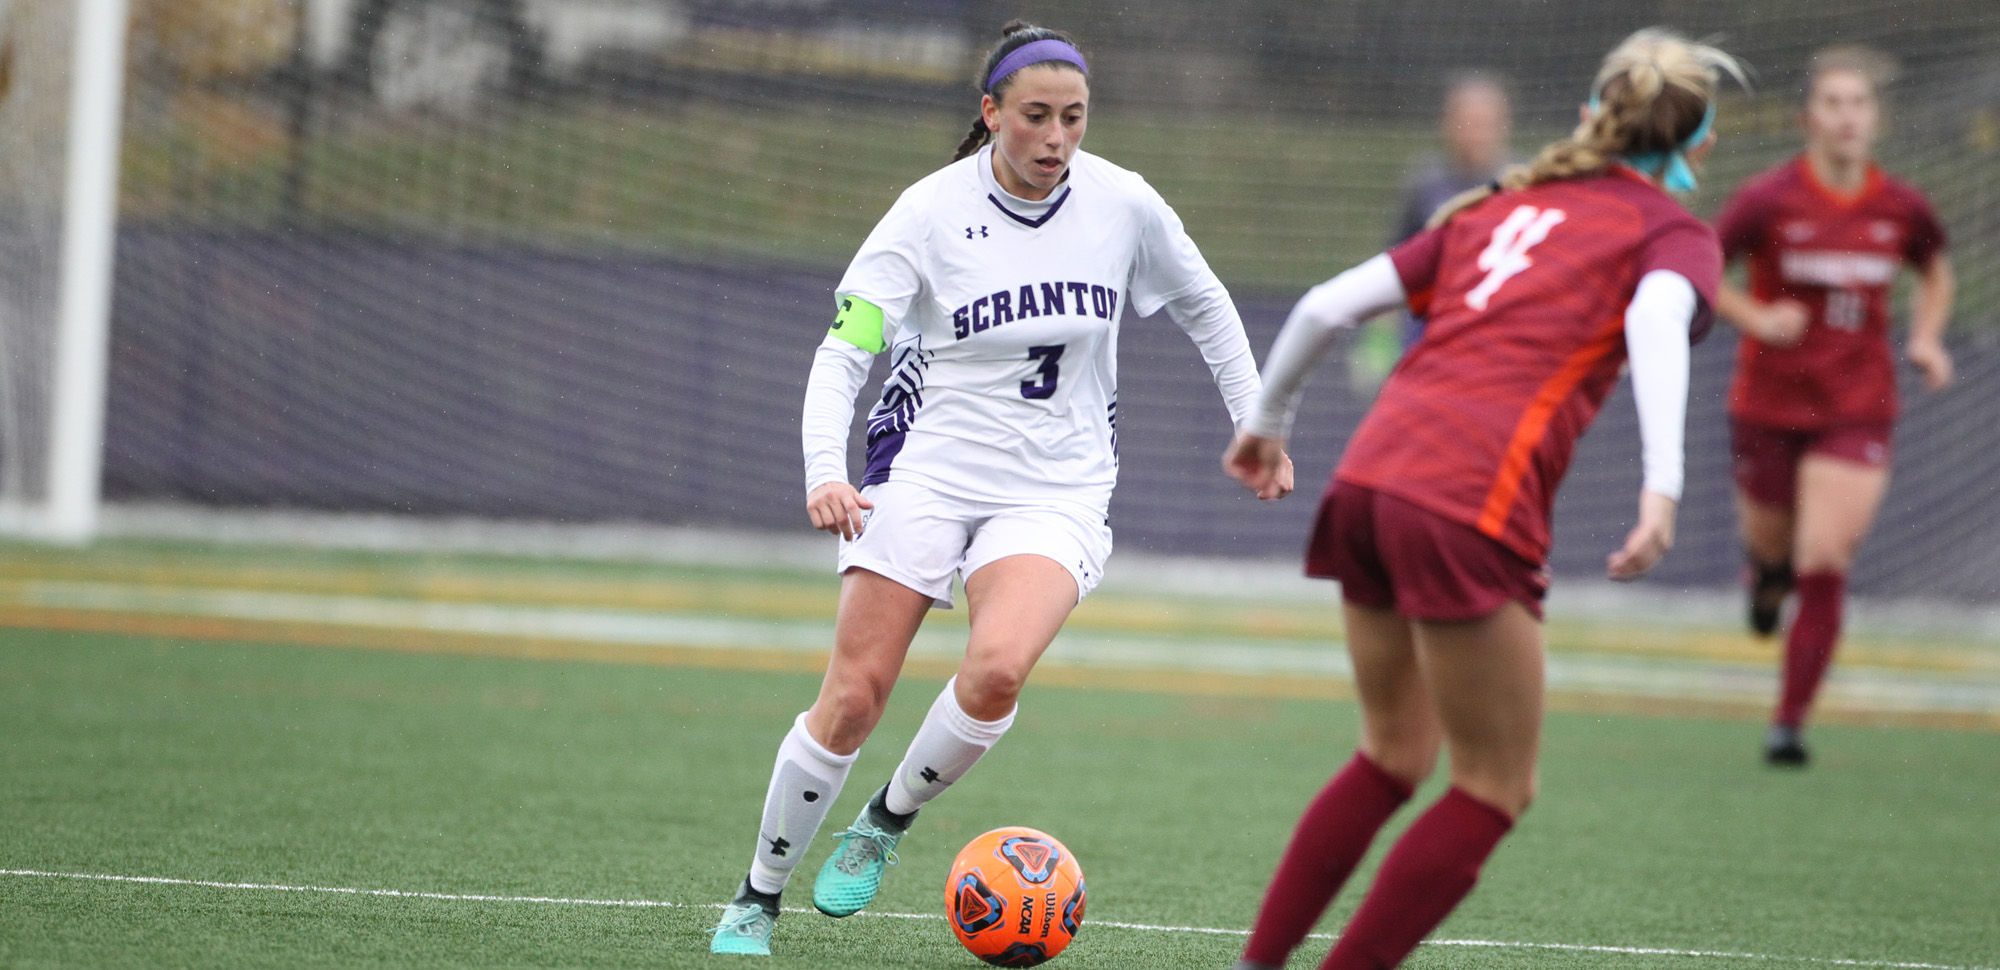 University of Scranton alumnus Erica Licari became just the 17th student-athlete in athletics program history to be awarded an NCAA Postgraduate Scholarship recently.